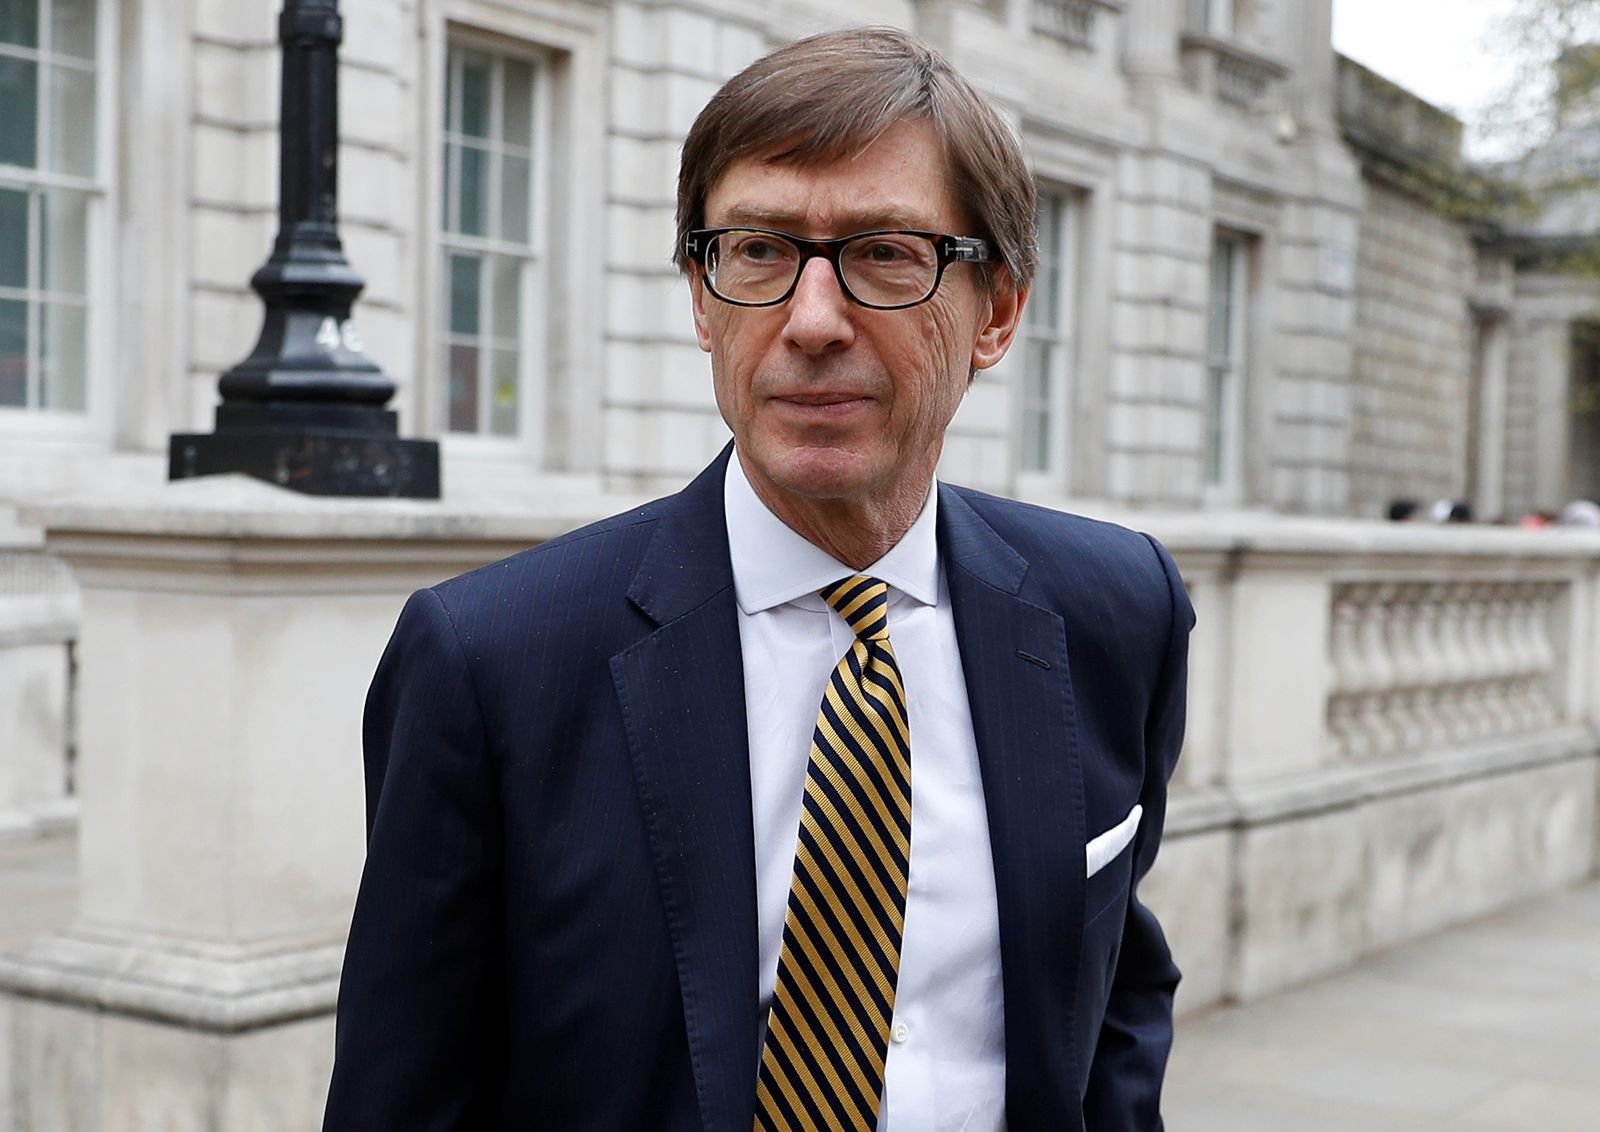 German Ambassador to the UK Peter Wittig is seen outside the Cabinet Office as talks over Brexit continue, in London